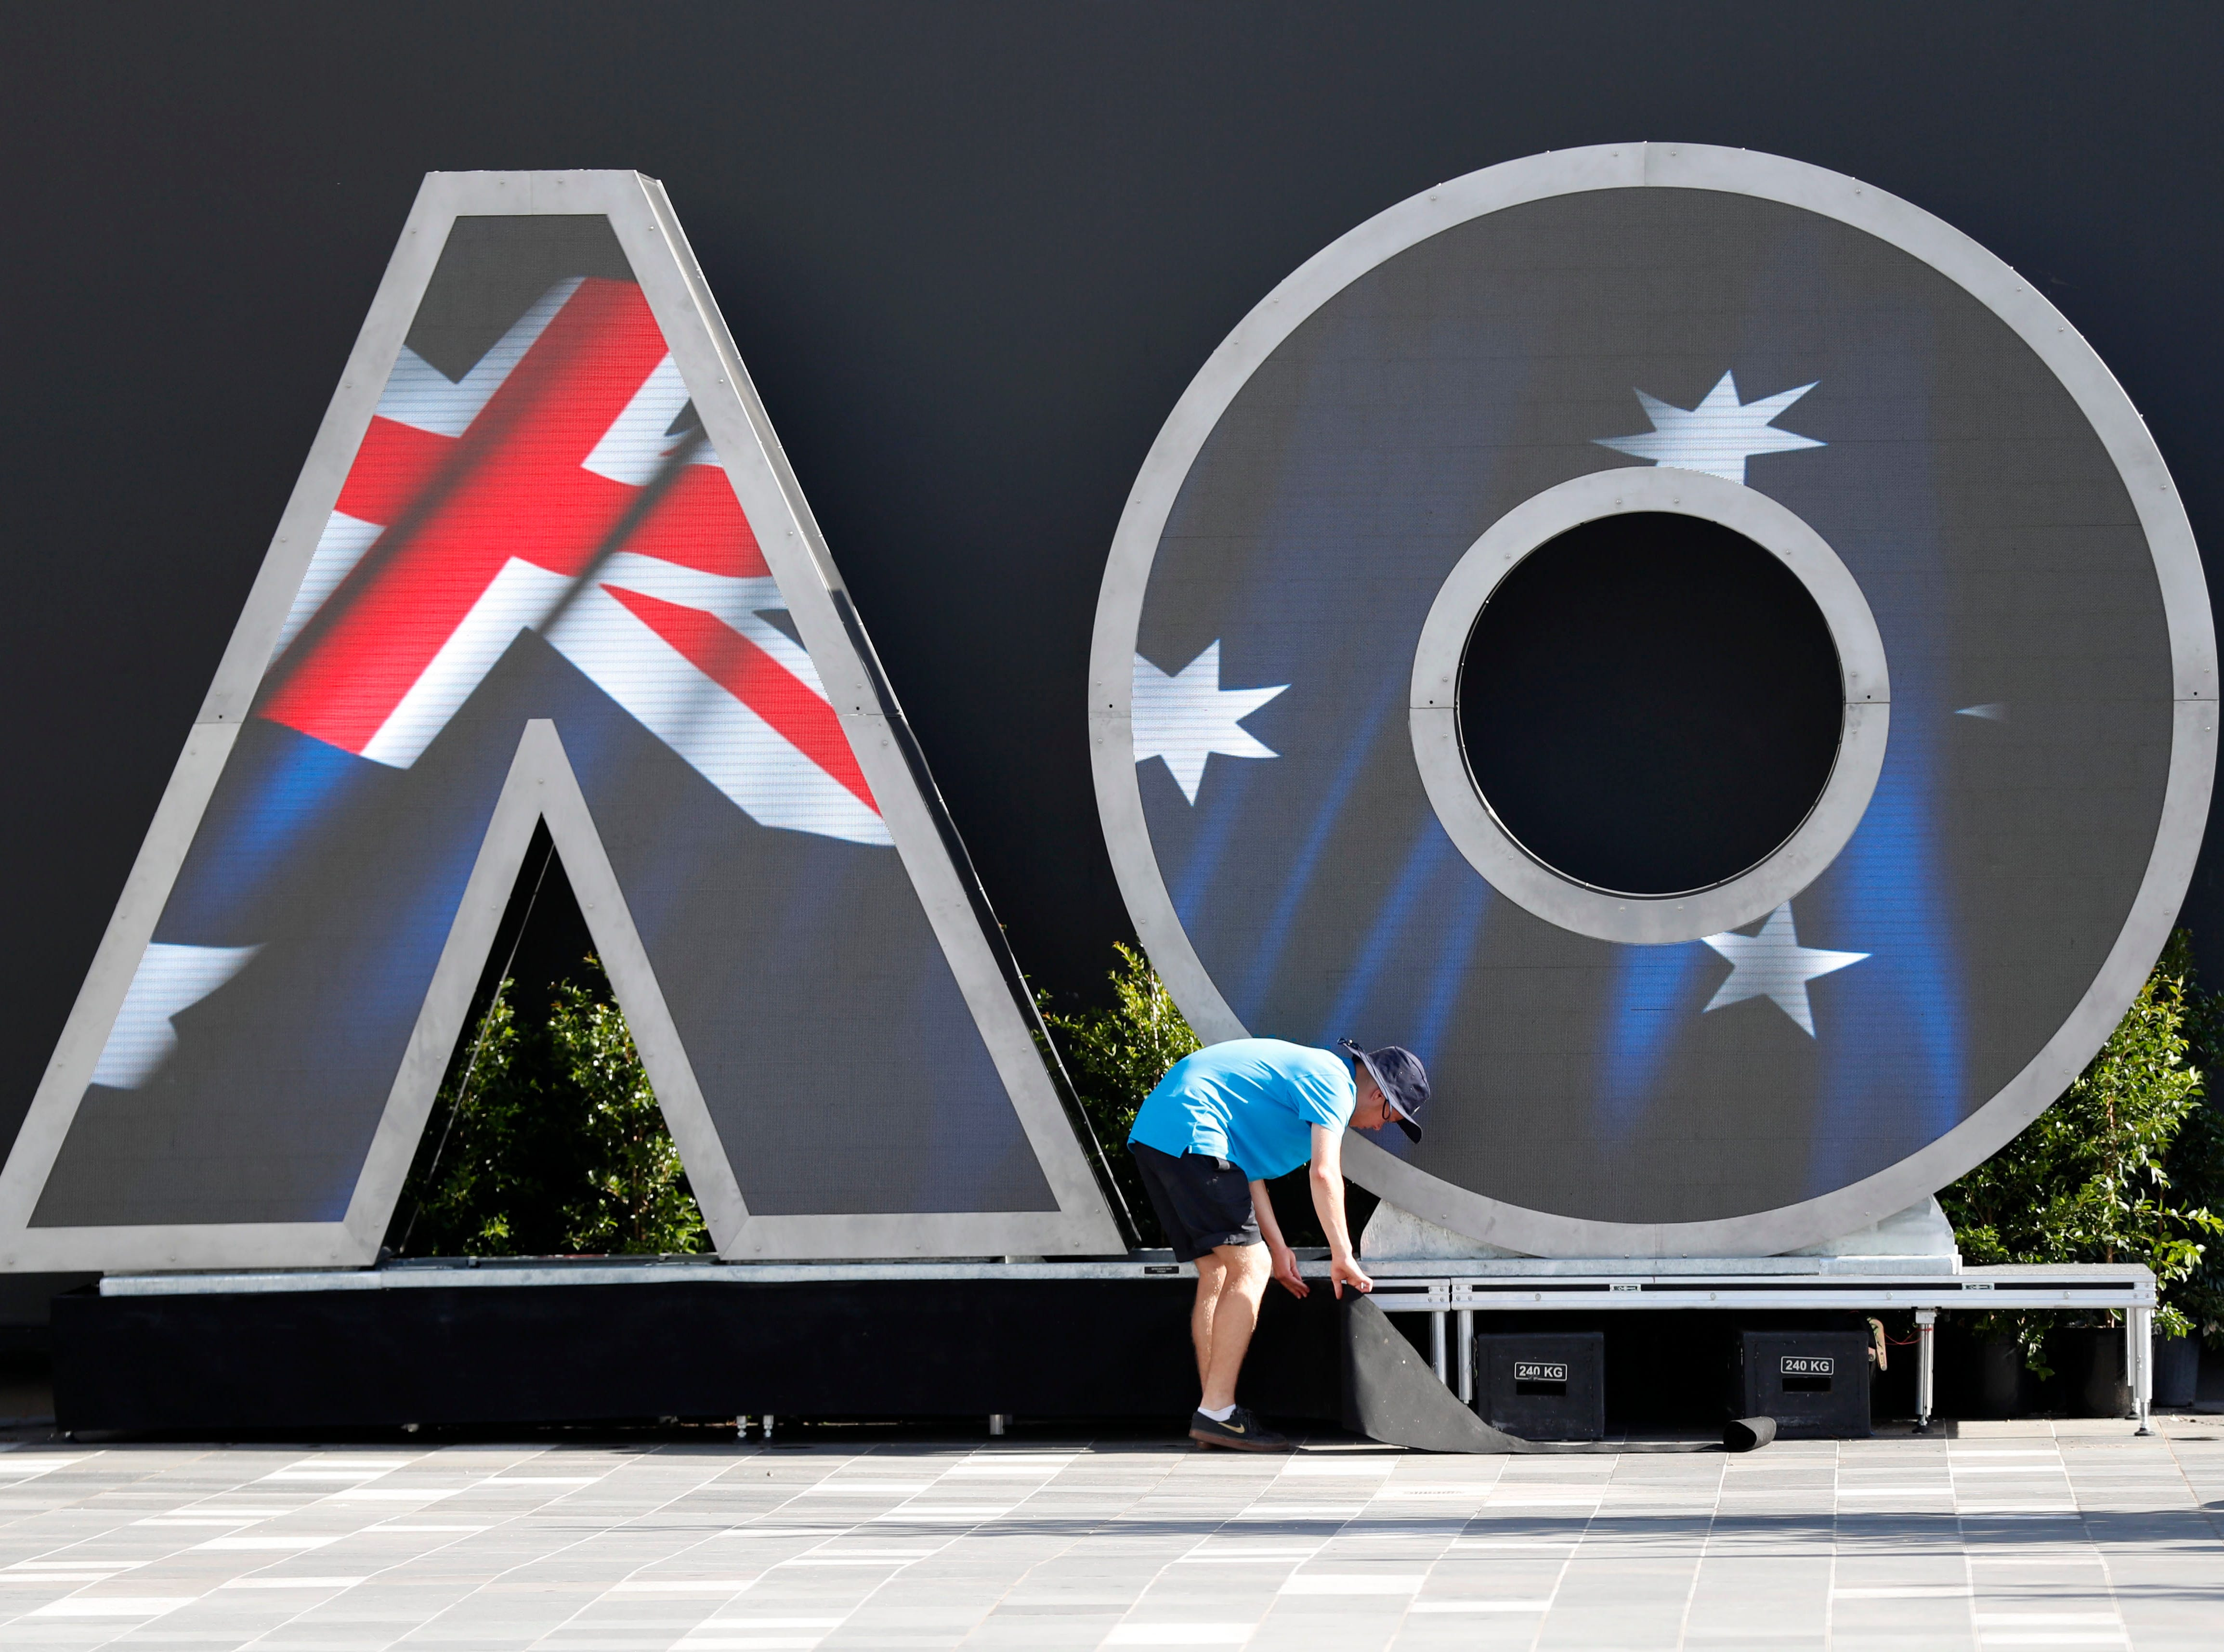 The Australian Open, the year's first Grand Slam tournament, runs through Jan. 27.